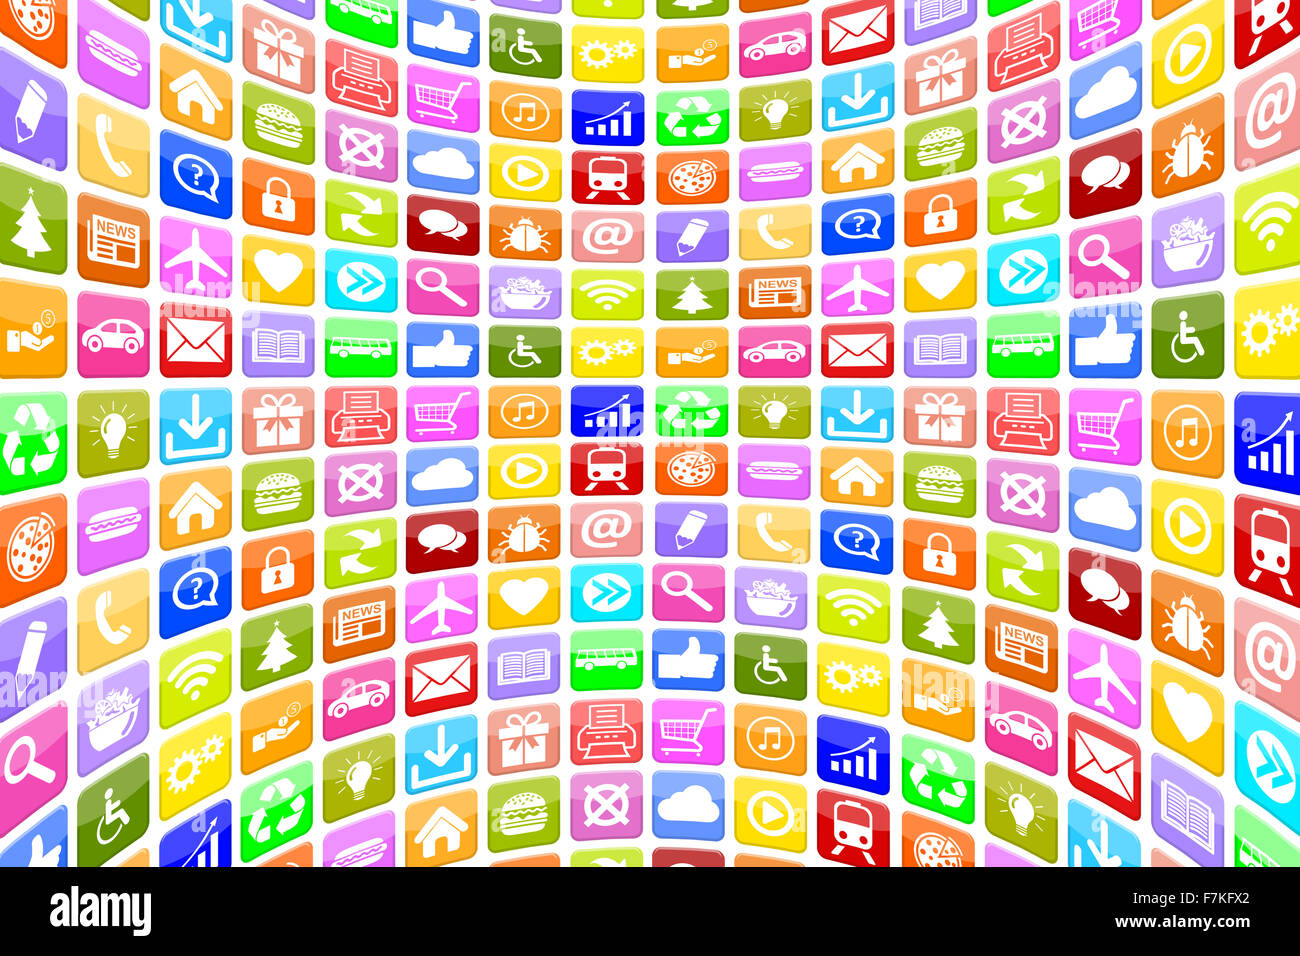 Application Apps App Icon Icons multimedia for mobile or smart phone programs background - Stock Image